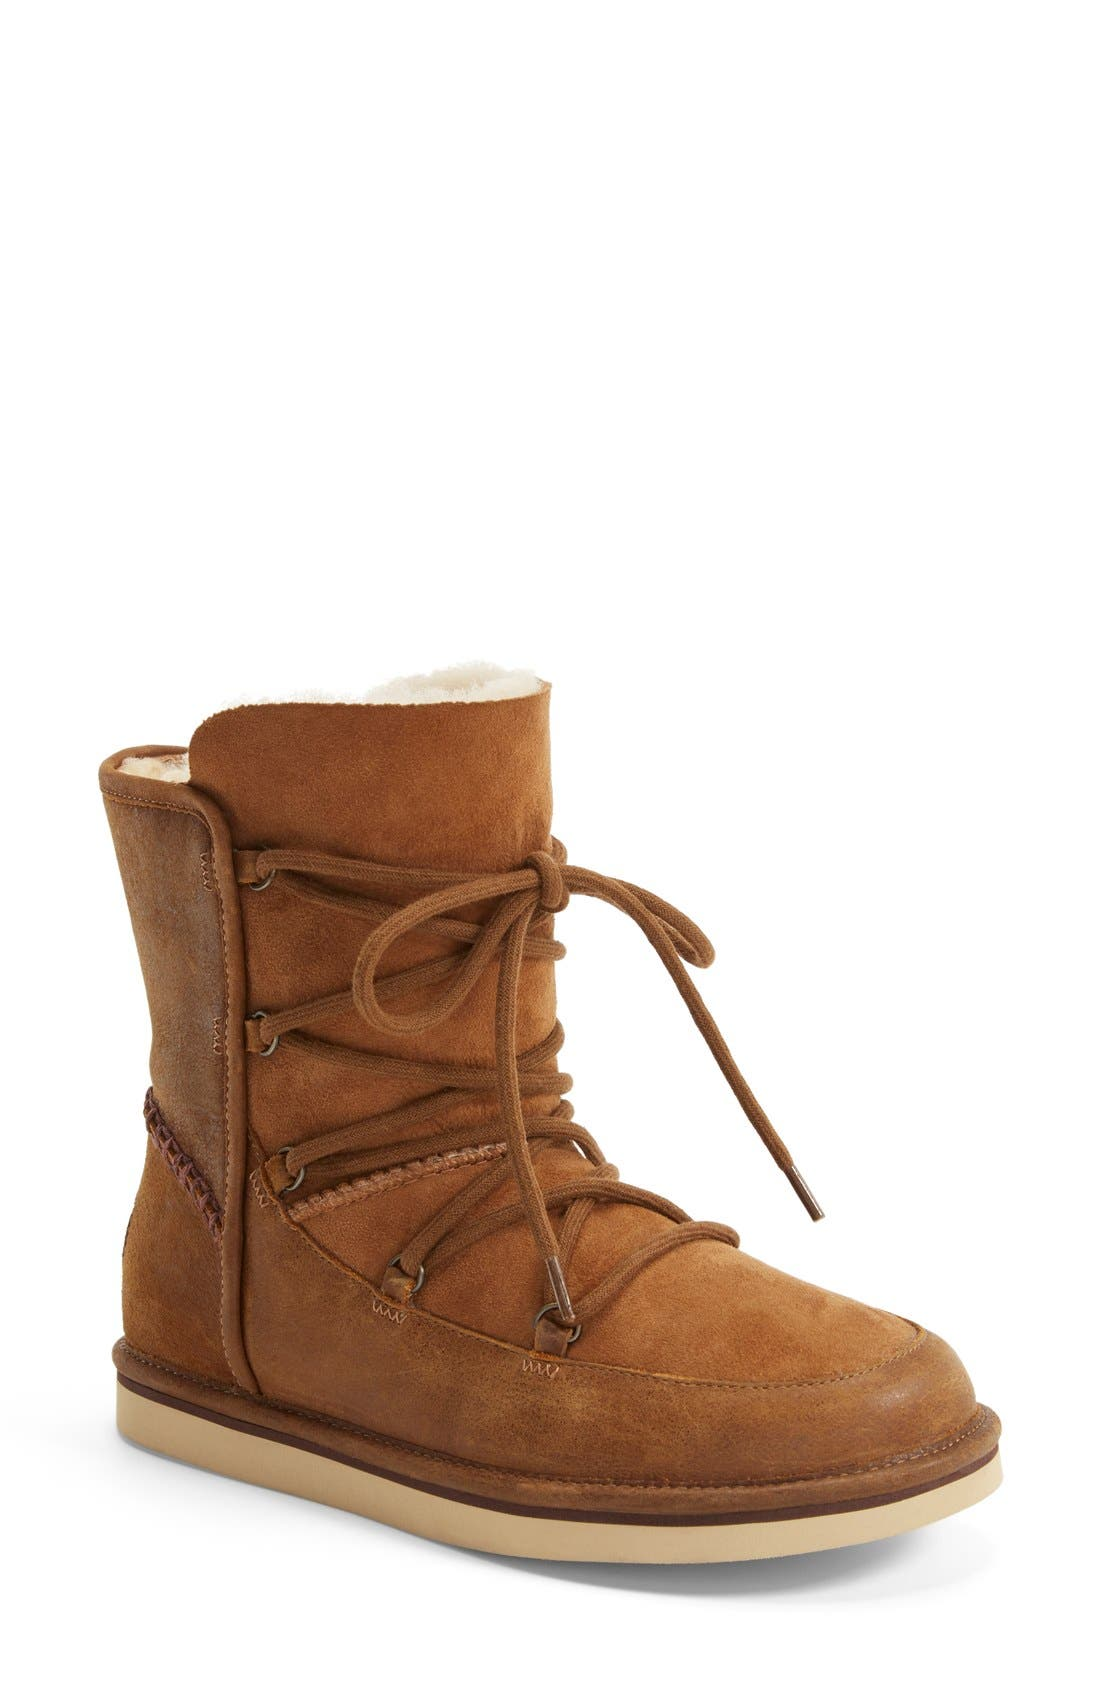 Main Image - UGG® Lodge Water Resistant Lace-Up Boot (Women)